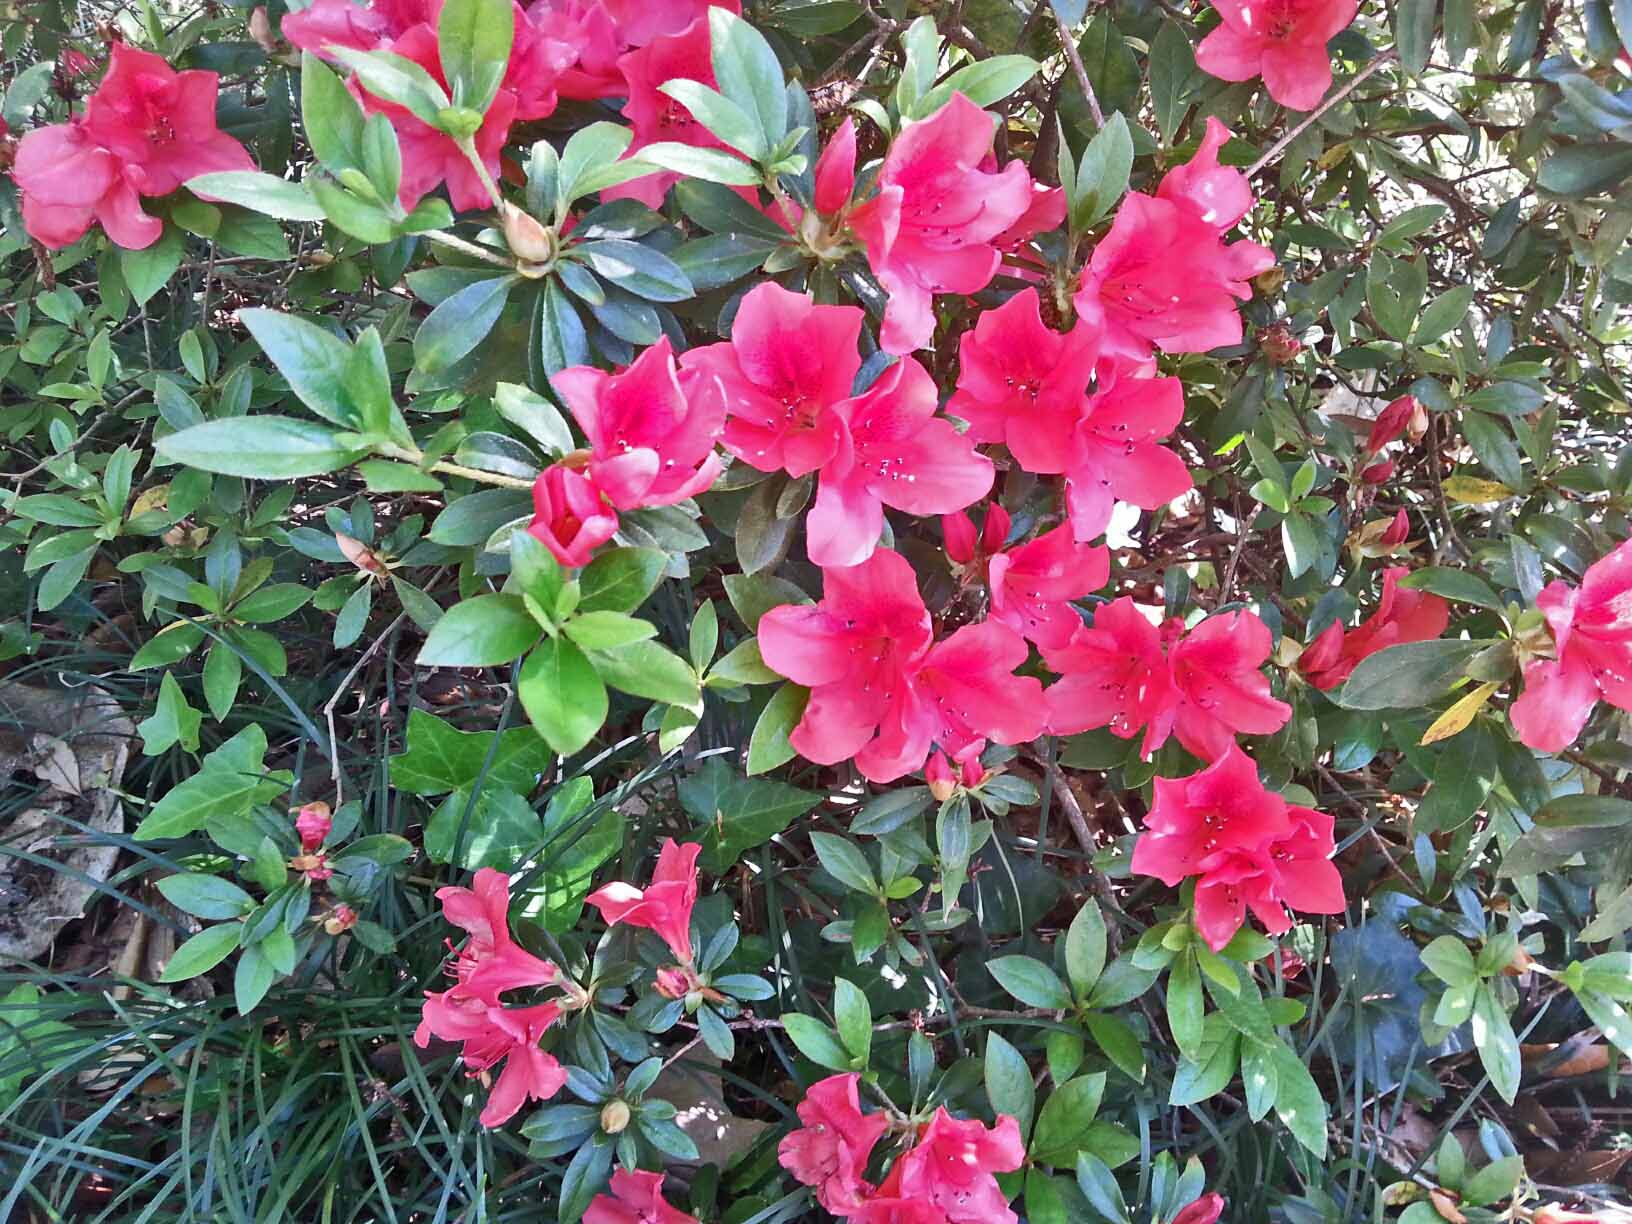 We thought the azaleas were done and had been beat down by the rains ... not so! One last bush has burst into bloom ... lovely!